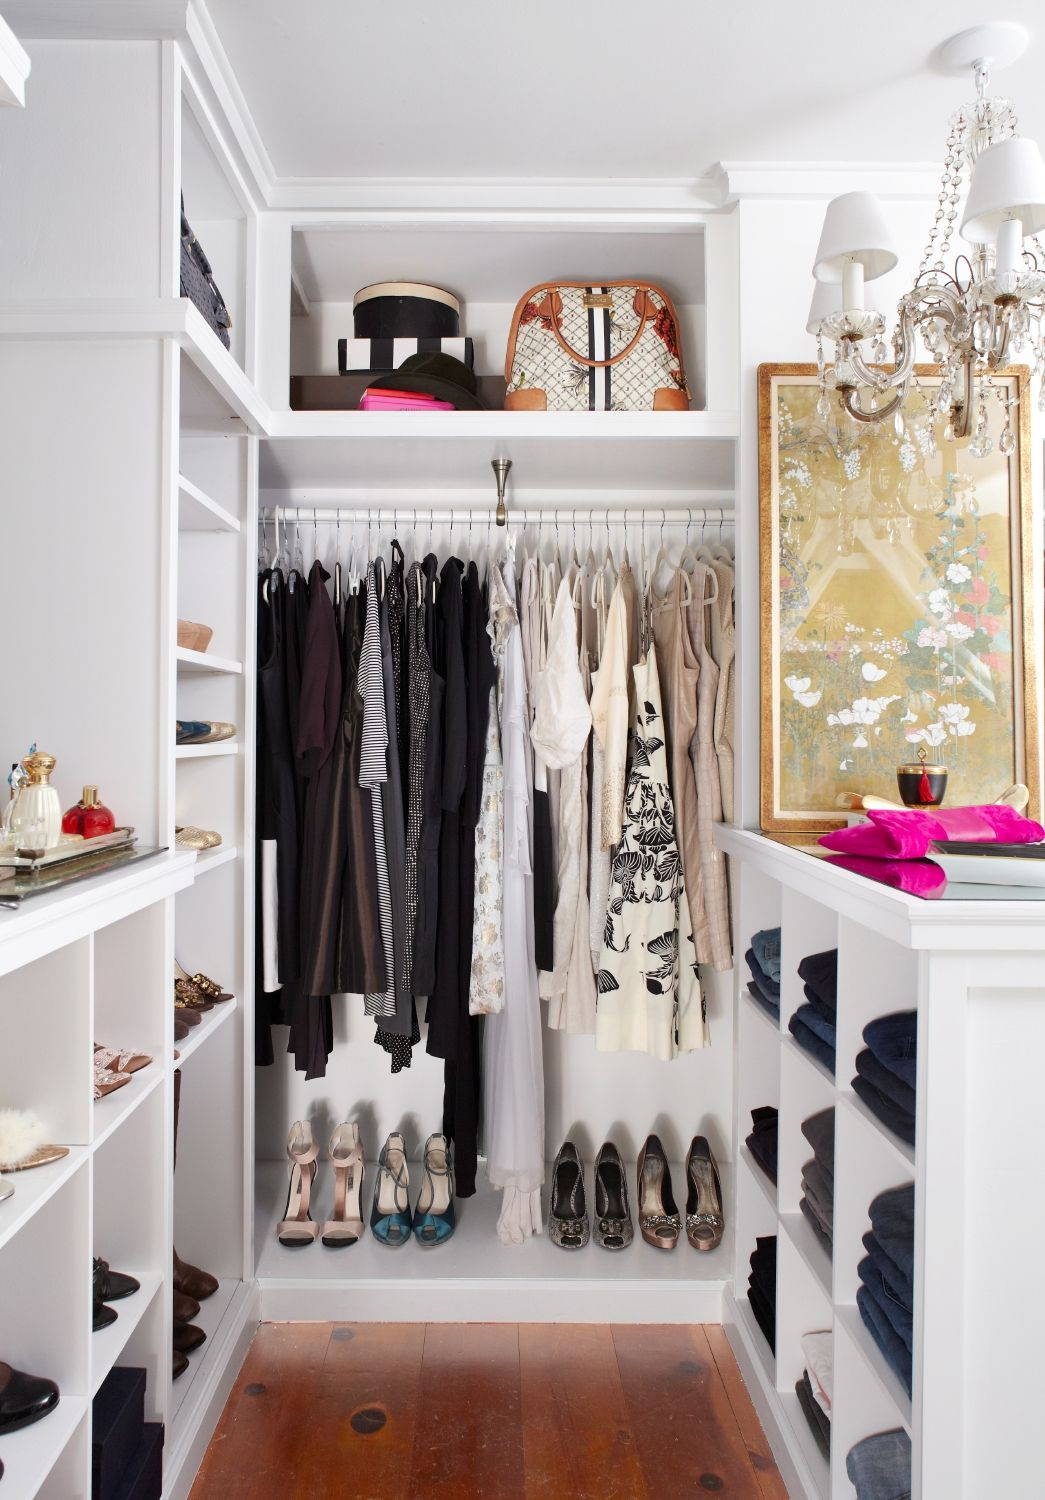 Small Walk In Closet Designs With Shelves Raise Hanging Rack And Add Box Slot Under Instead Ceiling High Shelf Become Another